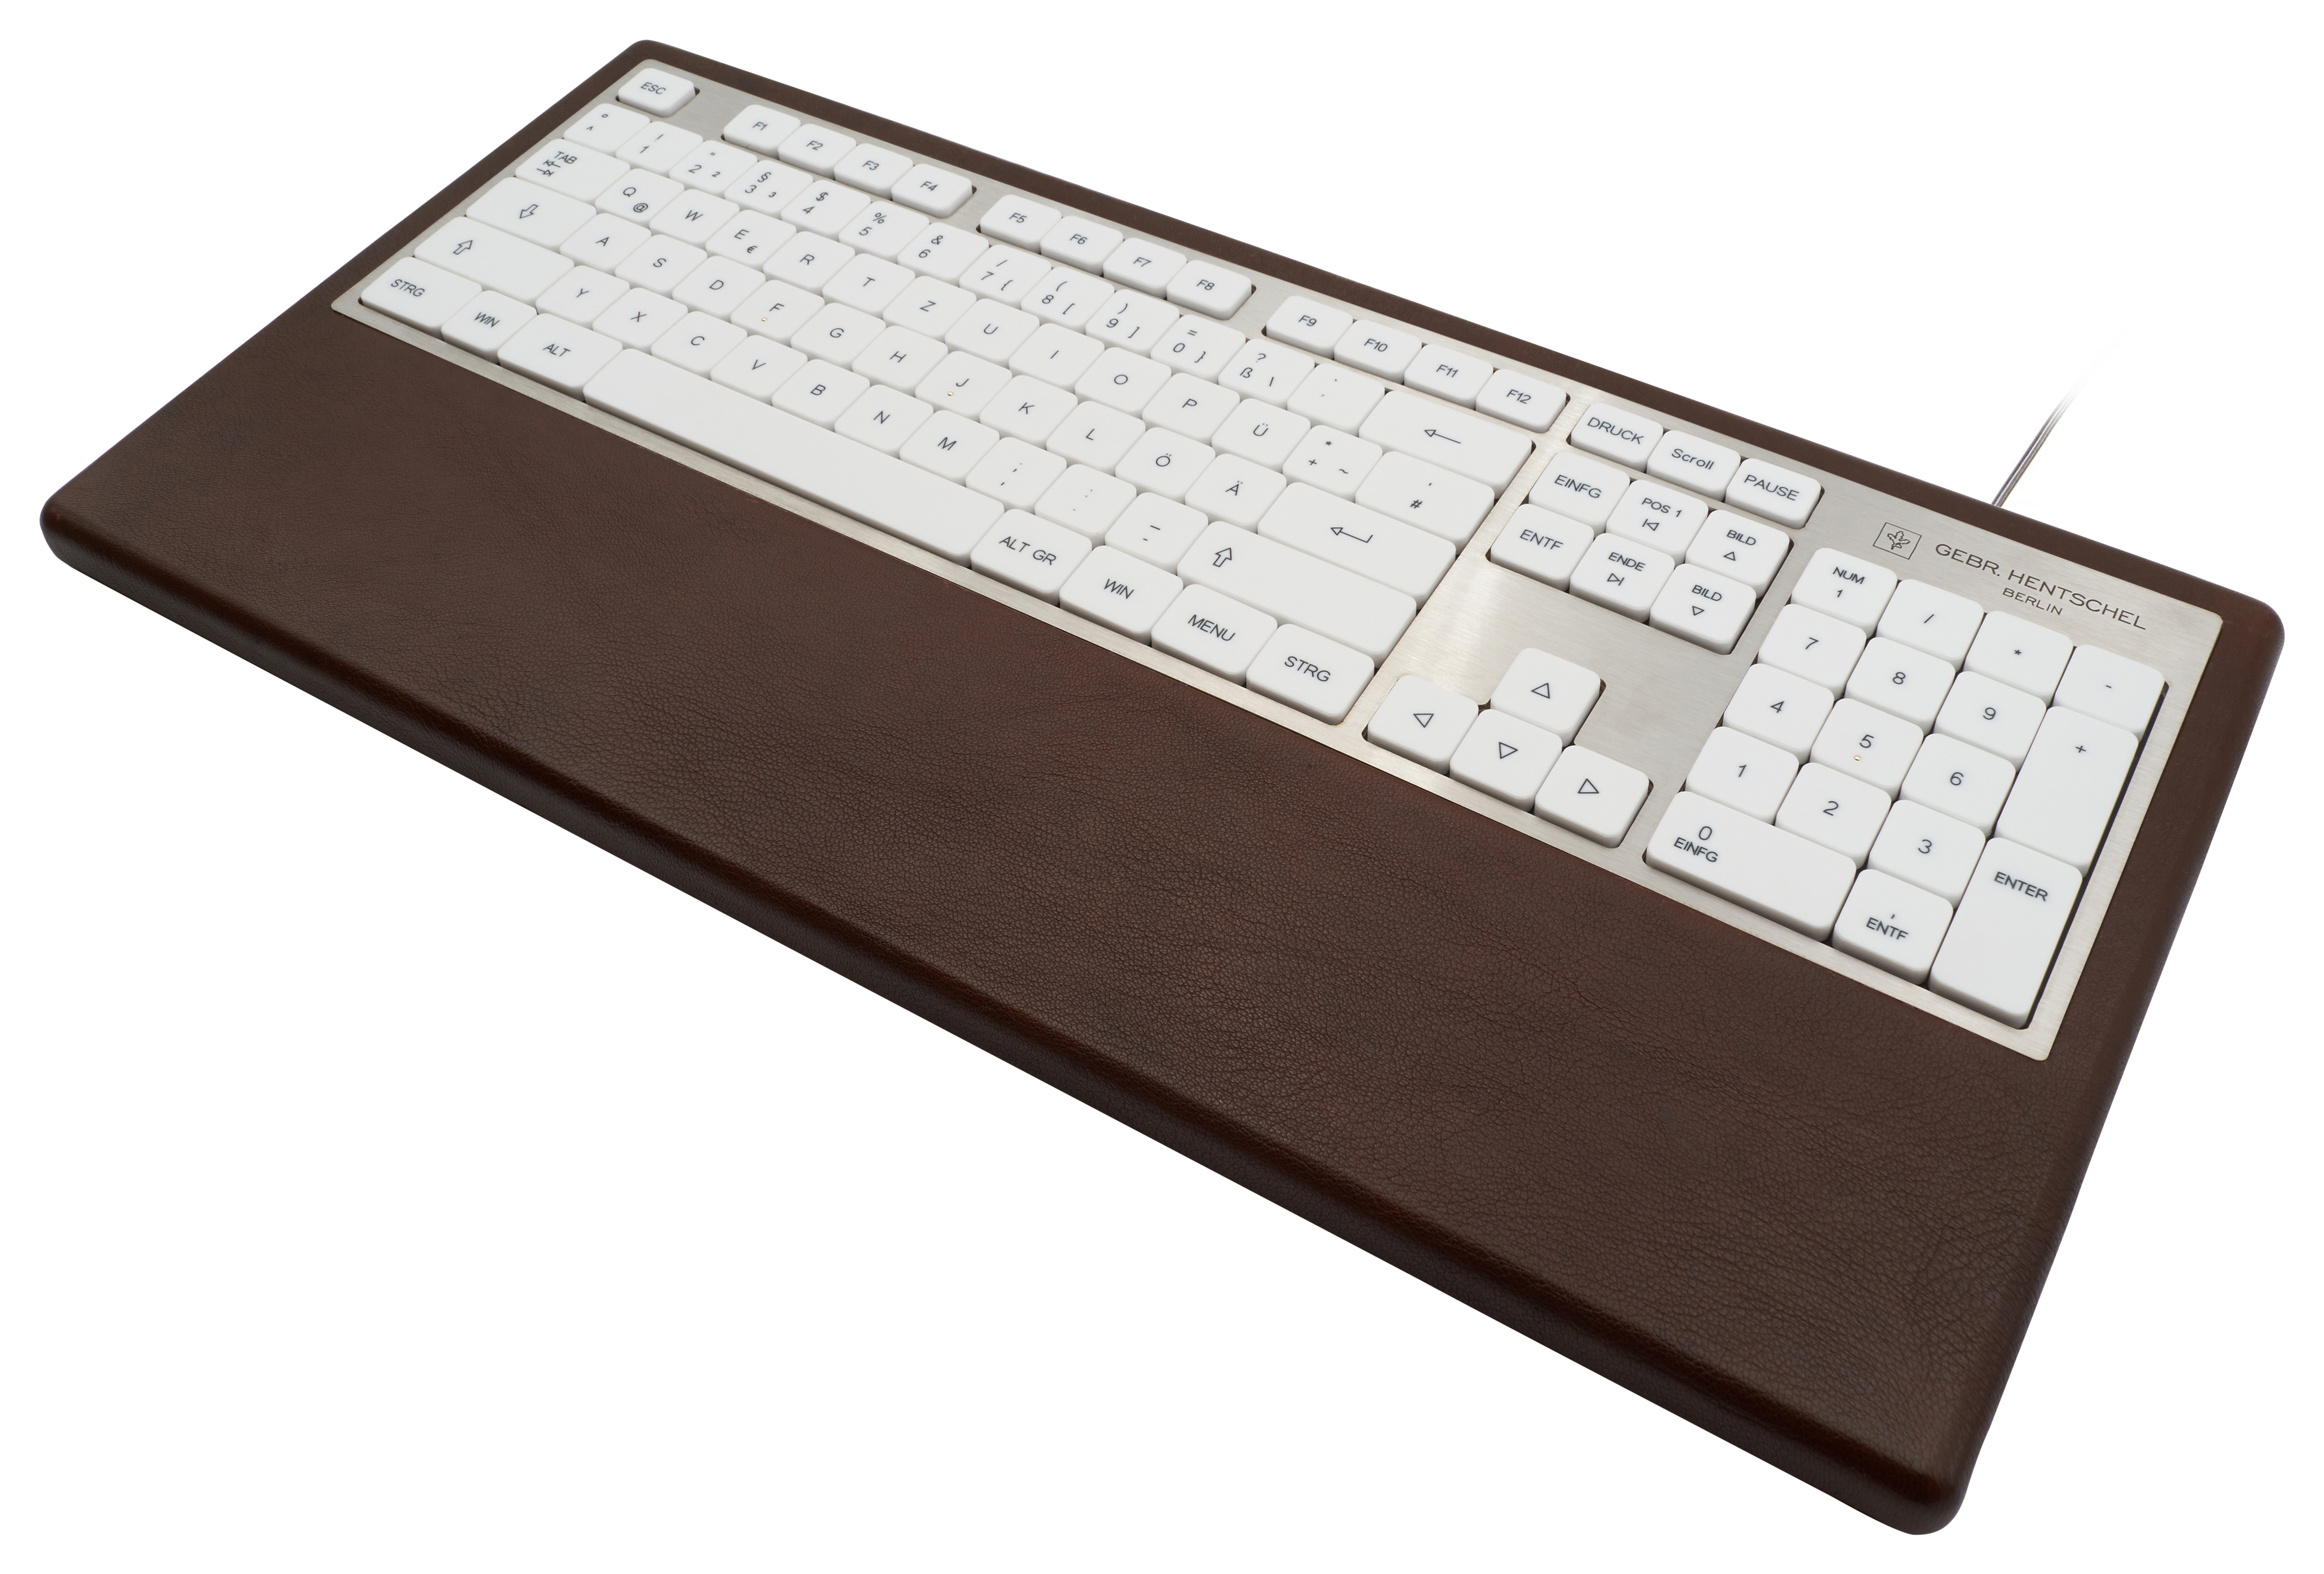 Luxury computer keyboard in brown leather